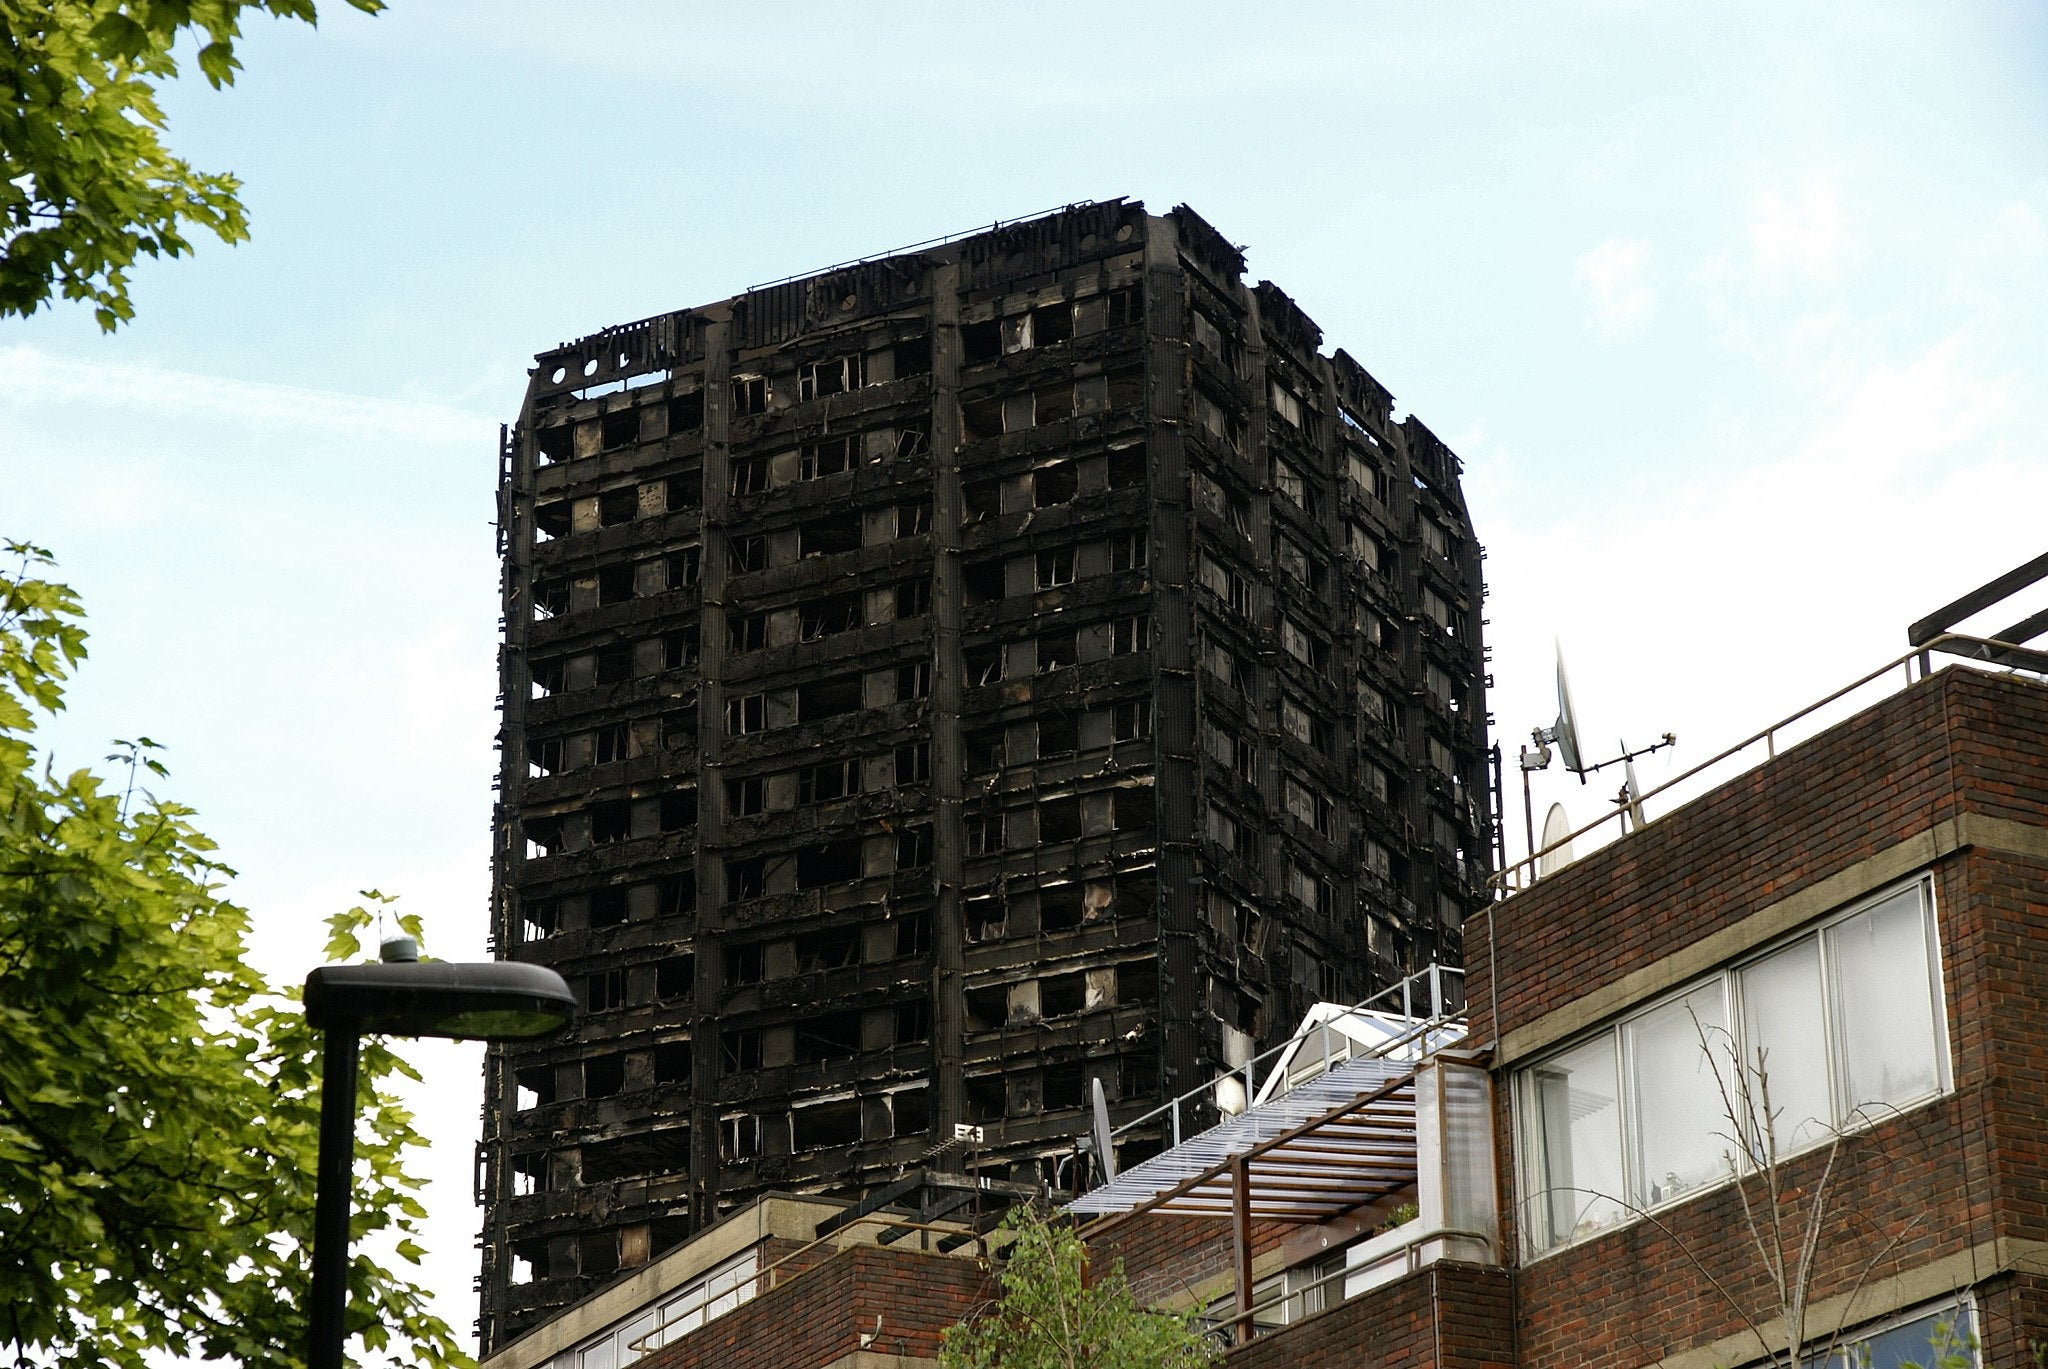 The top of Grenfell Tower, after the fire